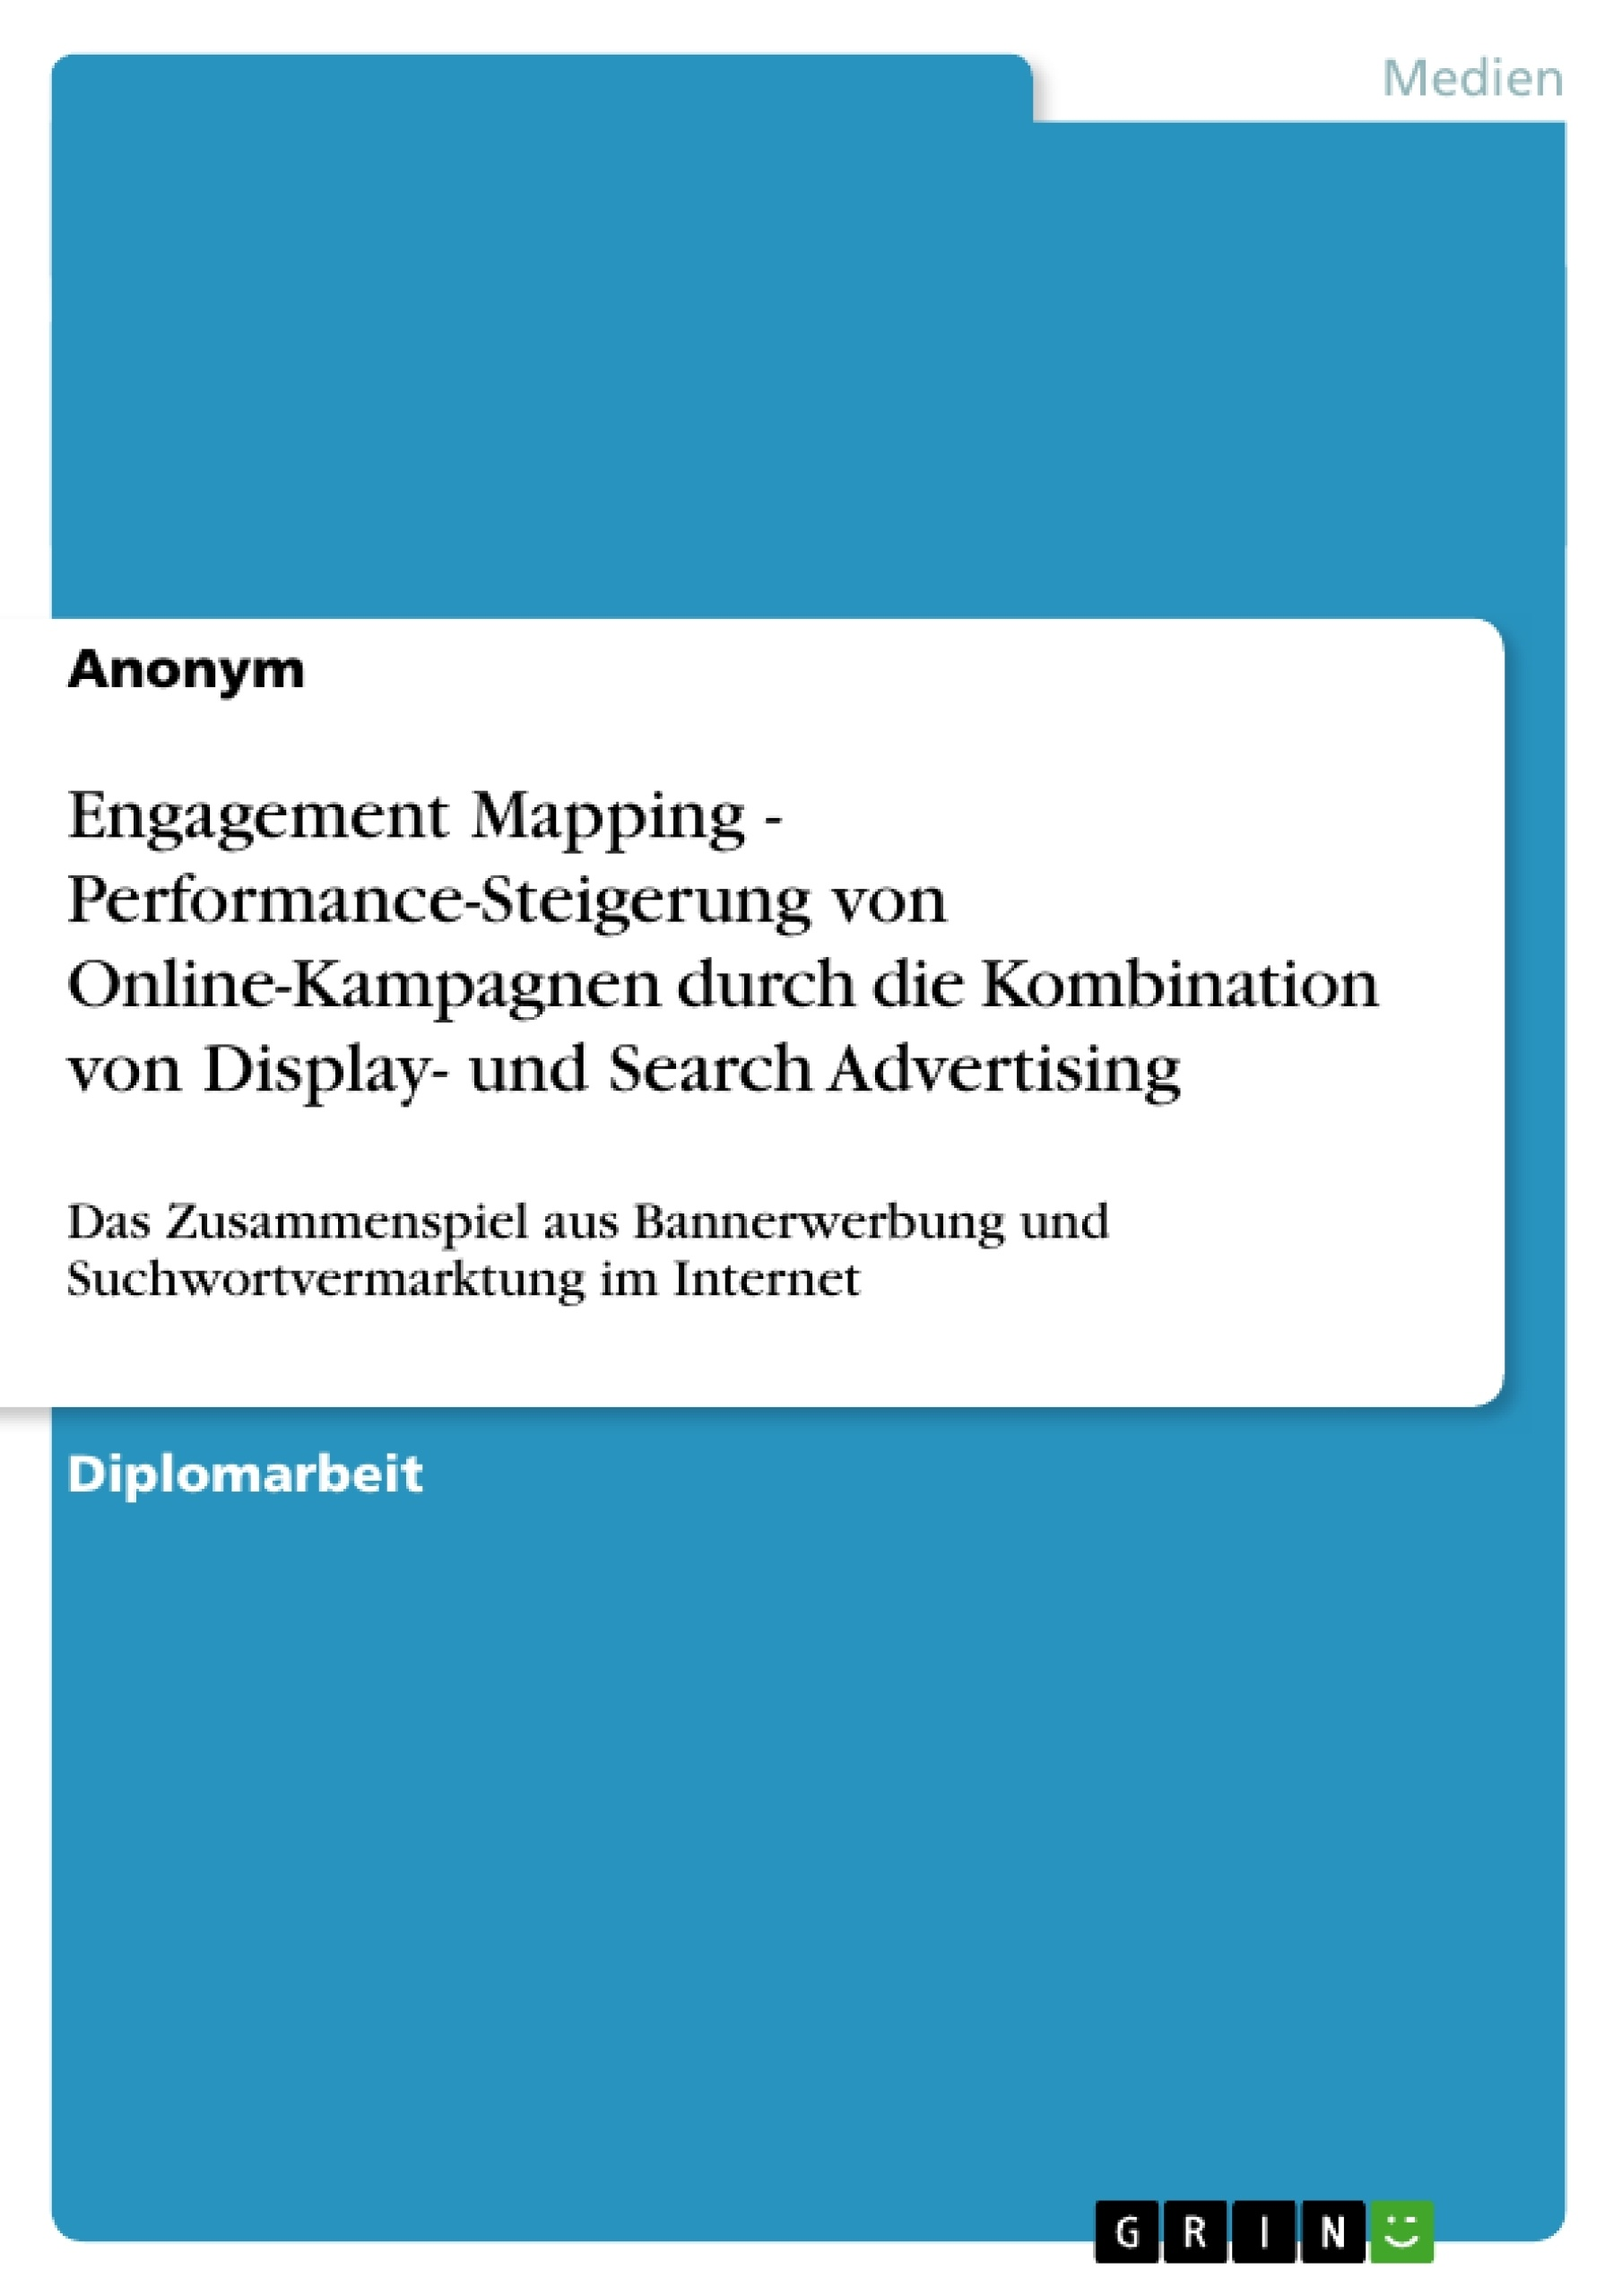 Titel: Engagement Mapping - Performance-Steigerung von Online-Kampagnen durch die Kombination von Display- und Search Advertising